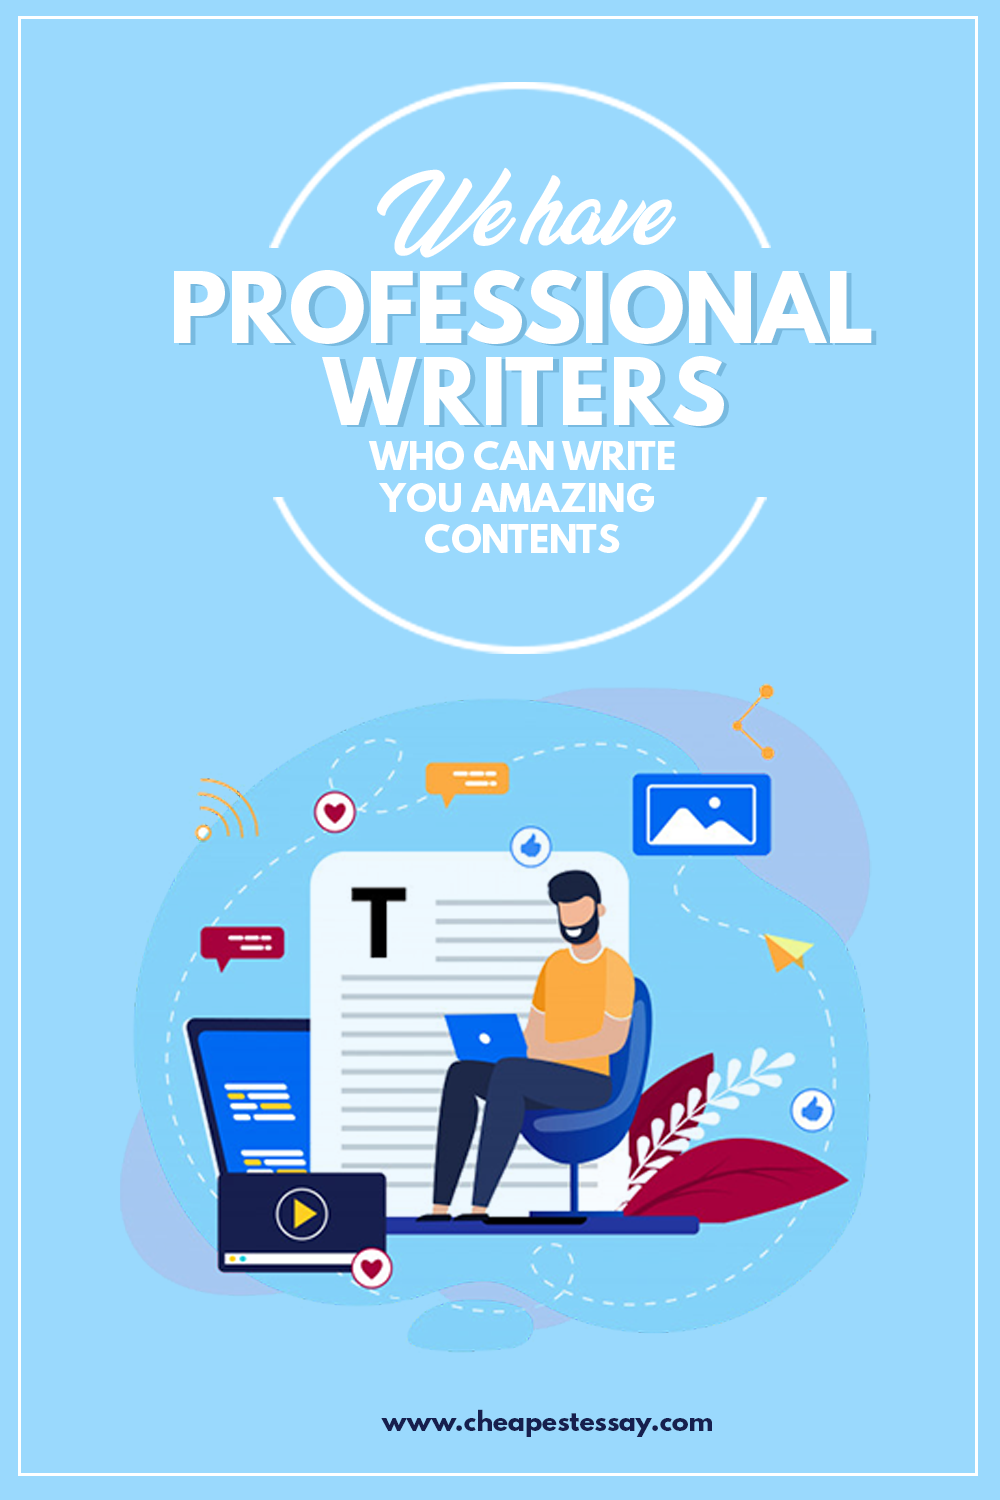 Cheapest Essay Has Professional Content Writers For Hire In 2020 Writing Services Essay Writing Essay